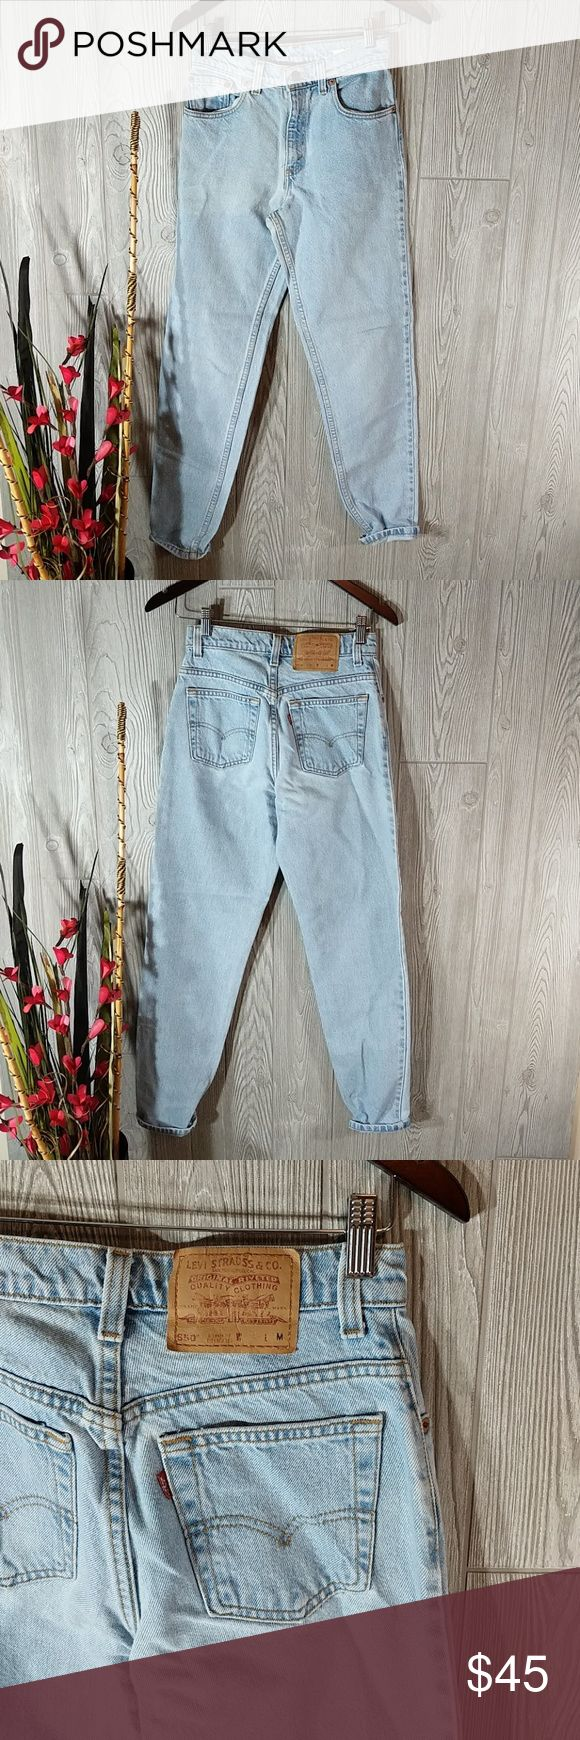 5m Levi 550 mom jeans tapered leg vintage Mint Condition vintage Levi's 550 jeans in size 5 medium. Relaxed fit tapered leg light wash. No. Rip's hole stains or tears. inseam 30 in Levi's Jeans Straight Leg